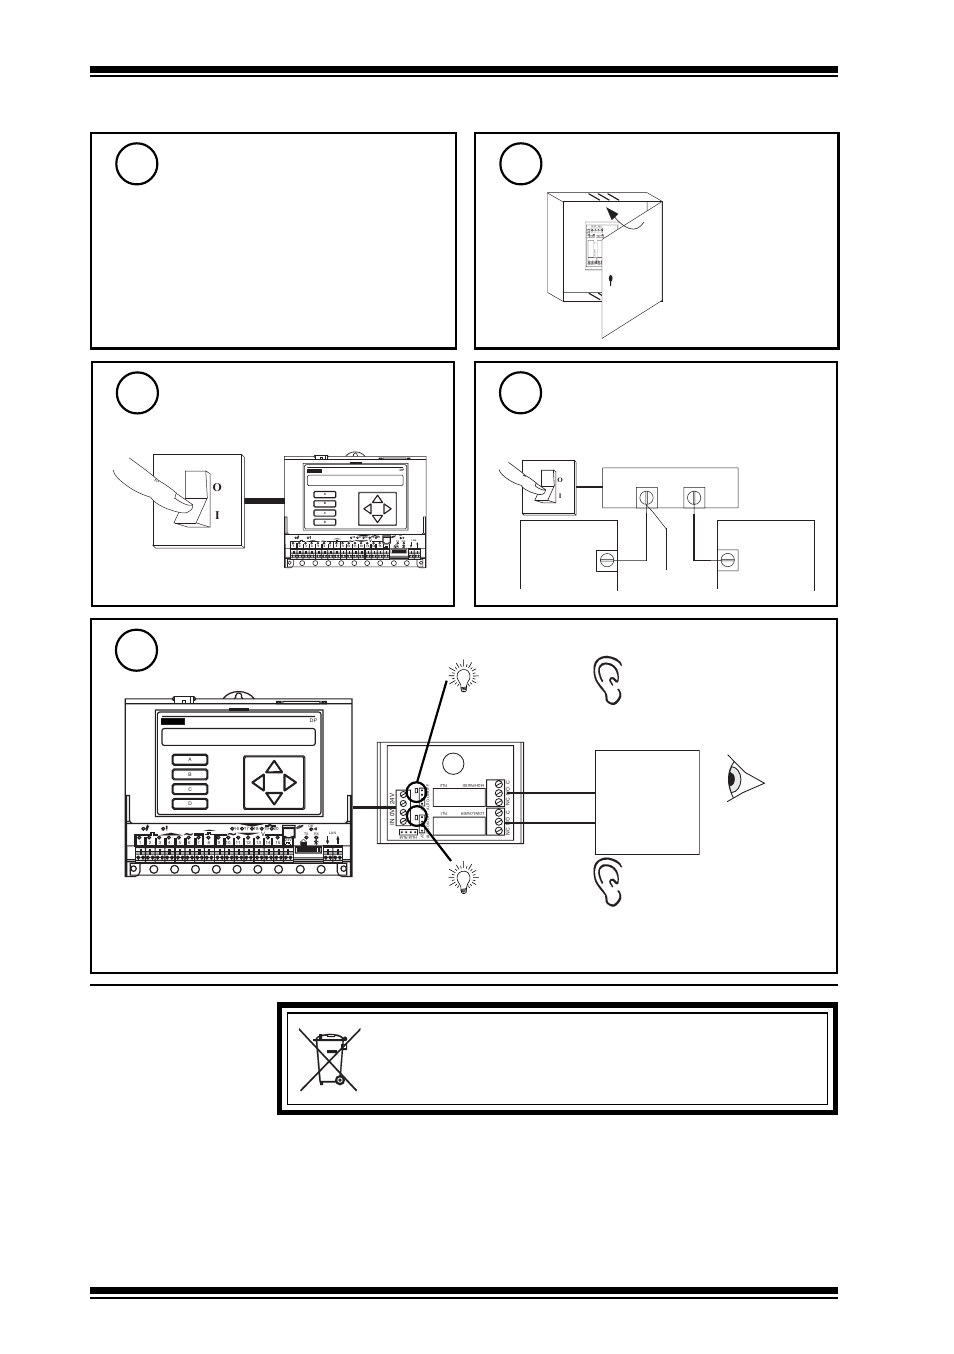 Weee Directive 2rm 24vac Installation Instructions 3installation Power Relay Explained 4disposal Close Panel